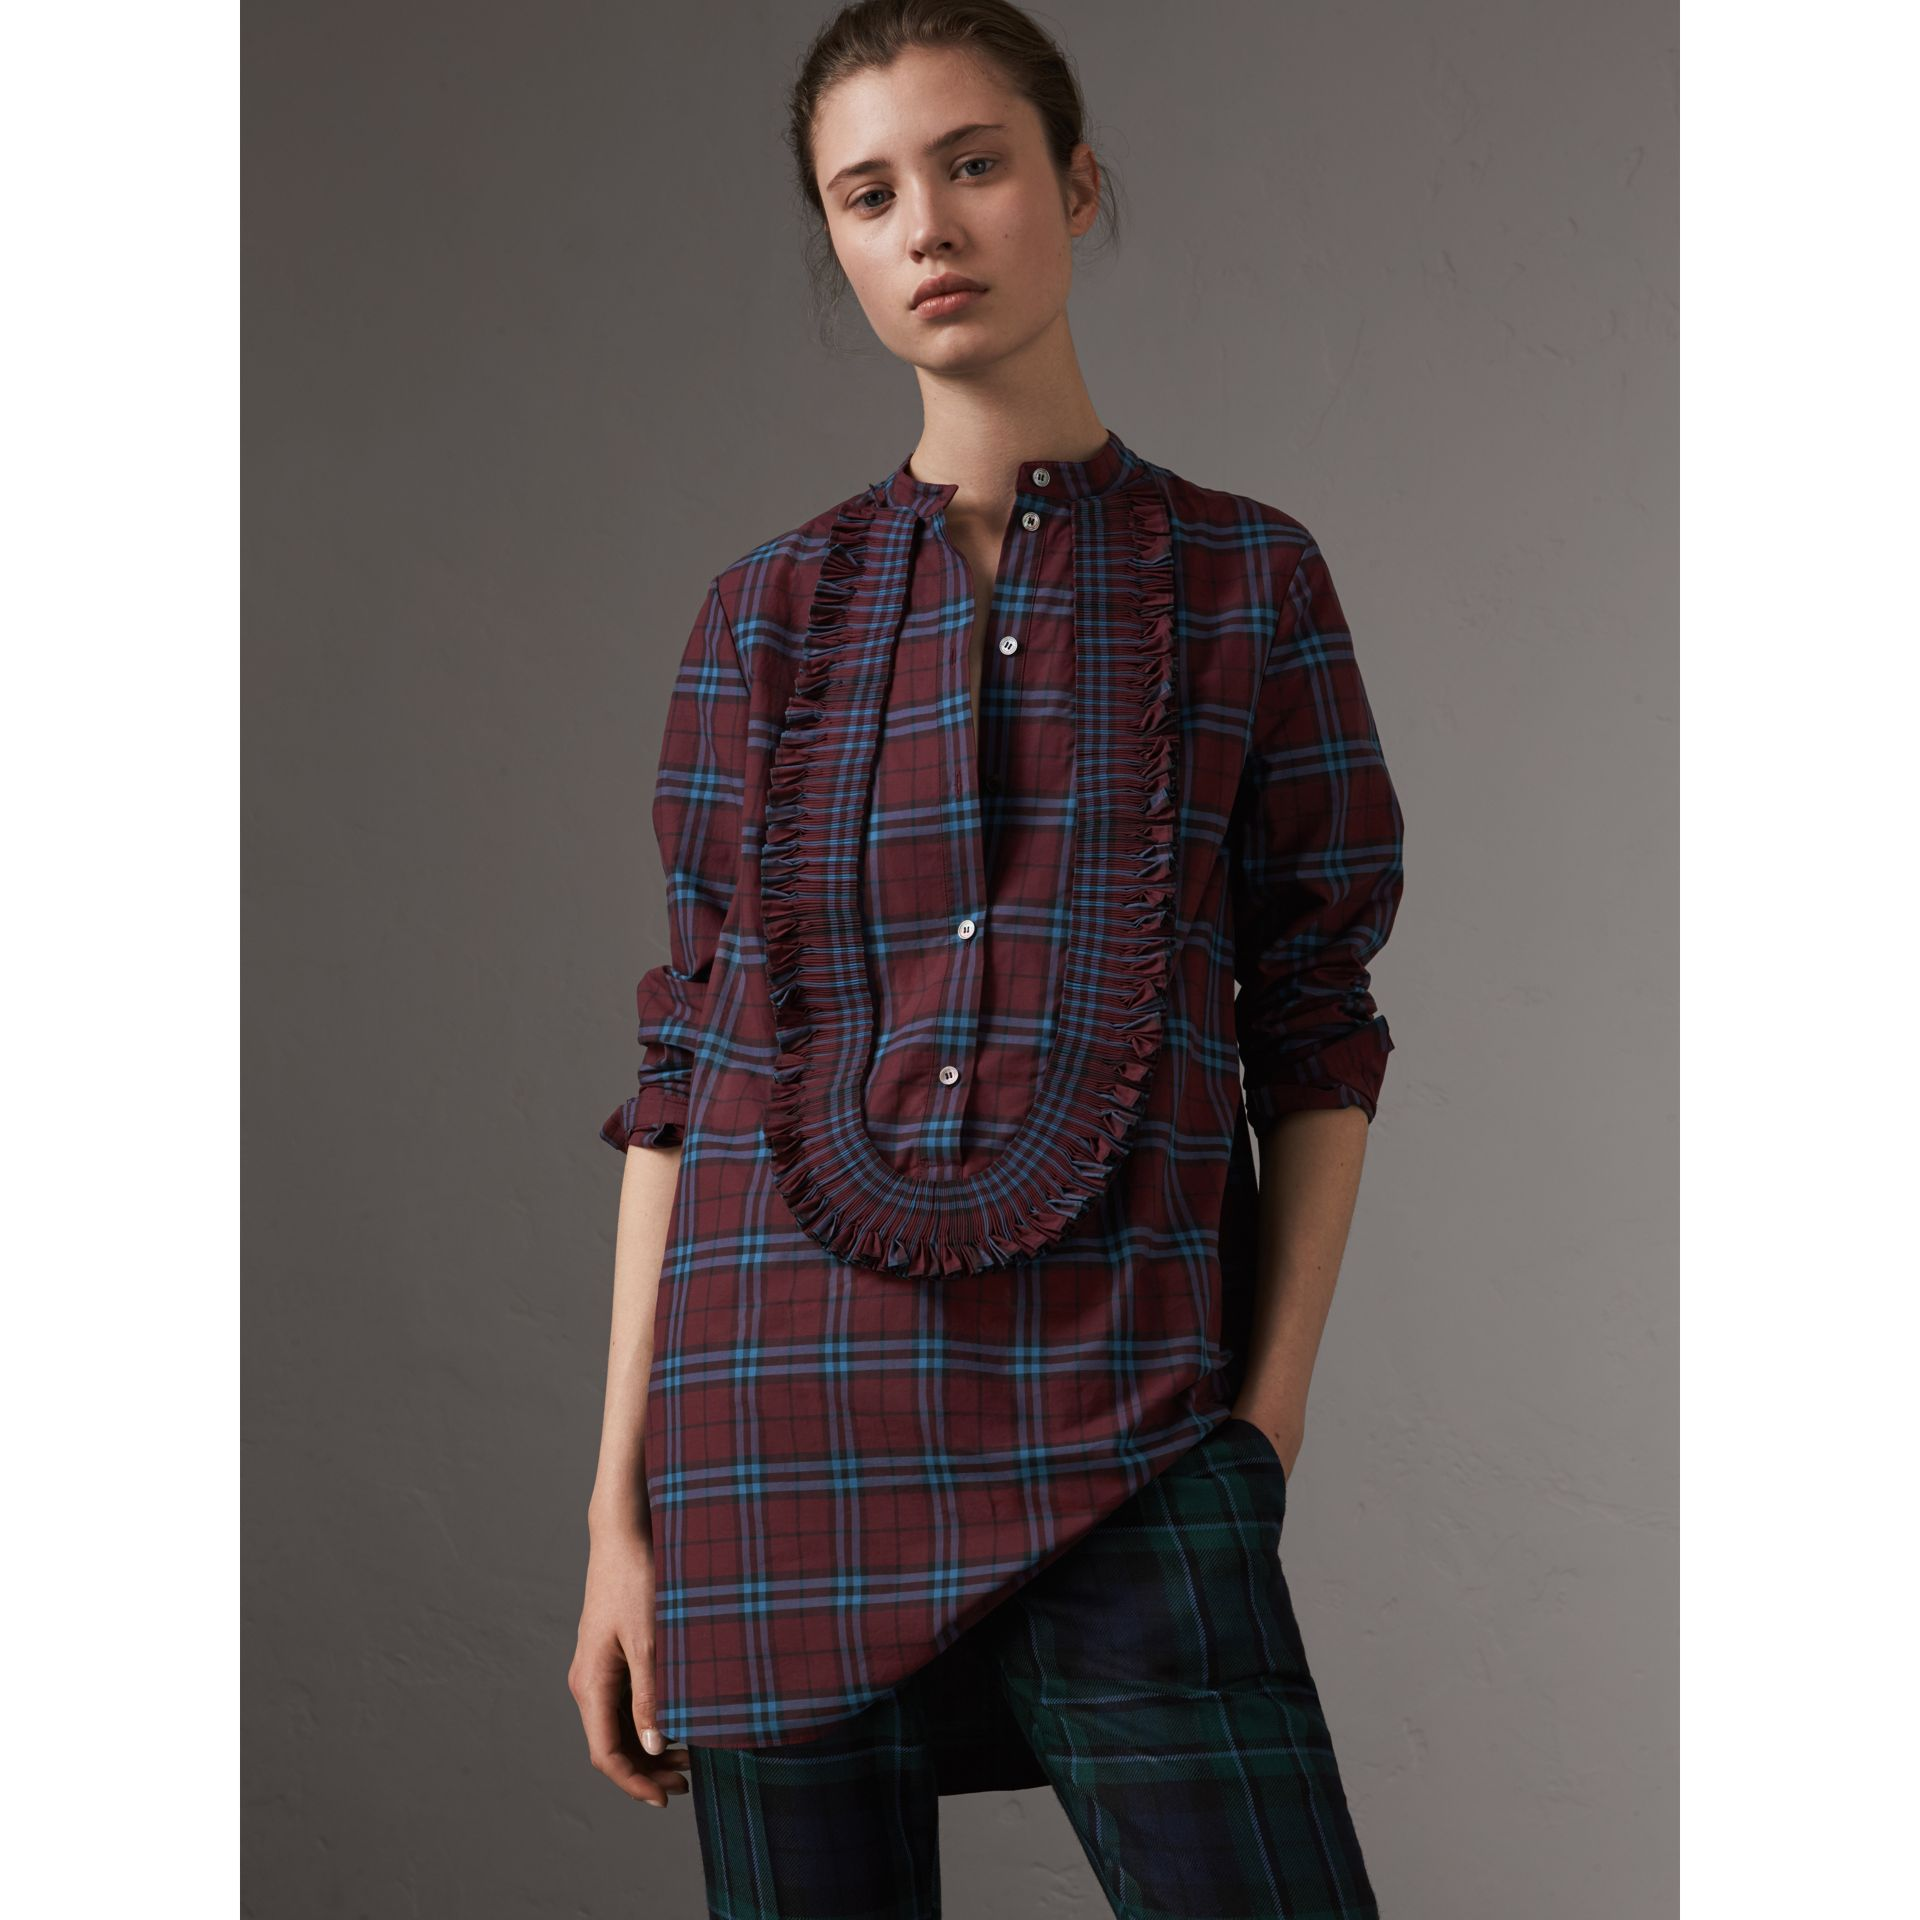 Ruffle Detail Check Cotton Tunic Shirt in Crimson Red - Women | Burberry United States - gallery image 1